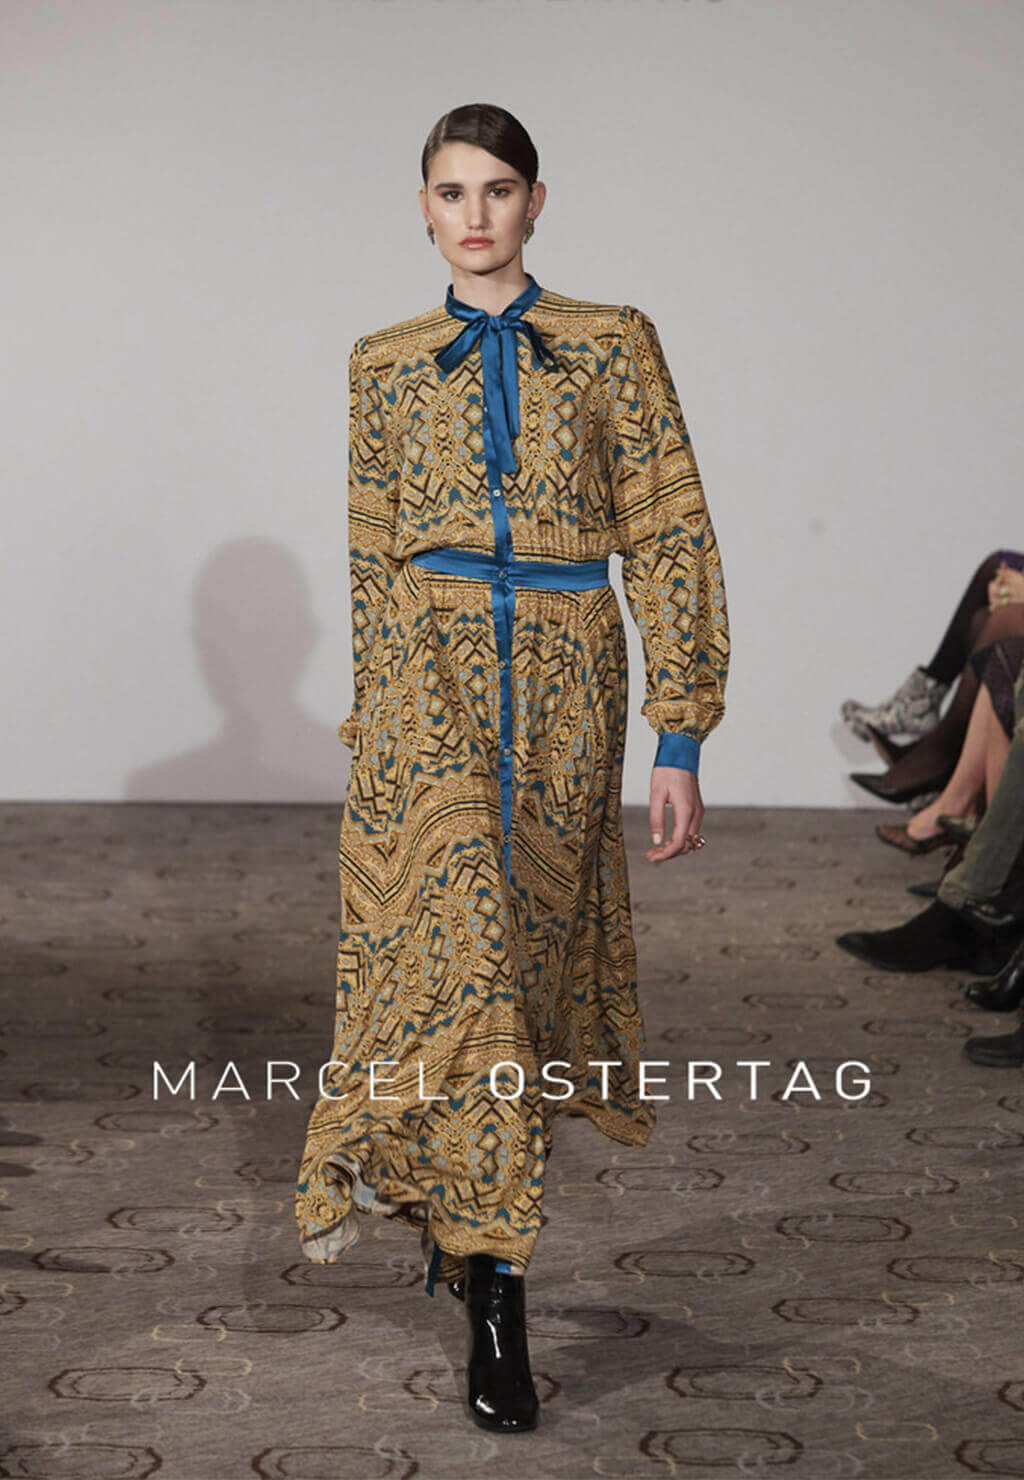 Ana Miguel - Marcel Ostertag - Berlin Fashion Week - Janeiro 2020 2